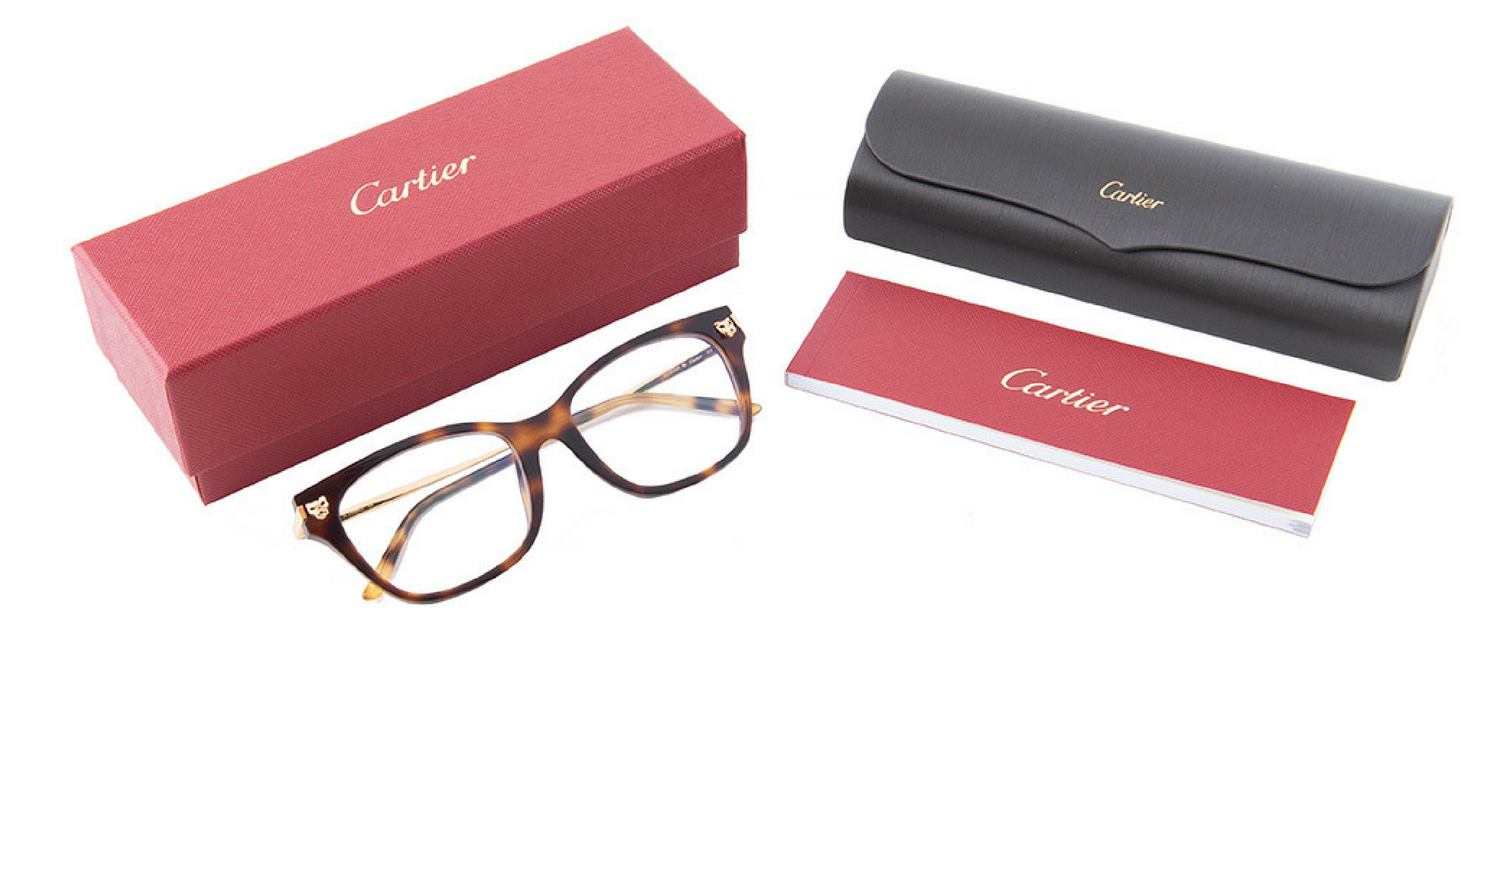 23a7784aaa7d Authentic Cartier Glasses